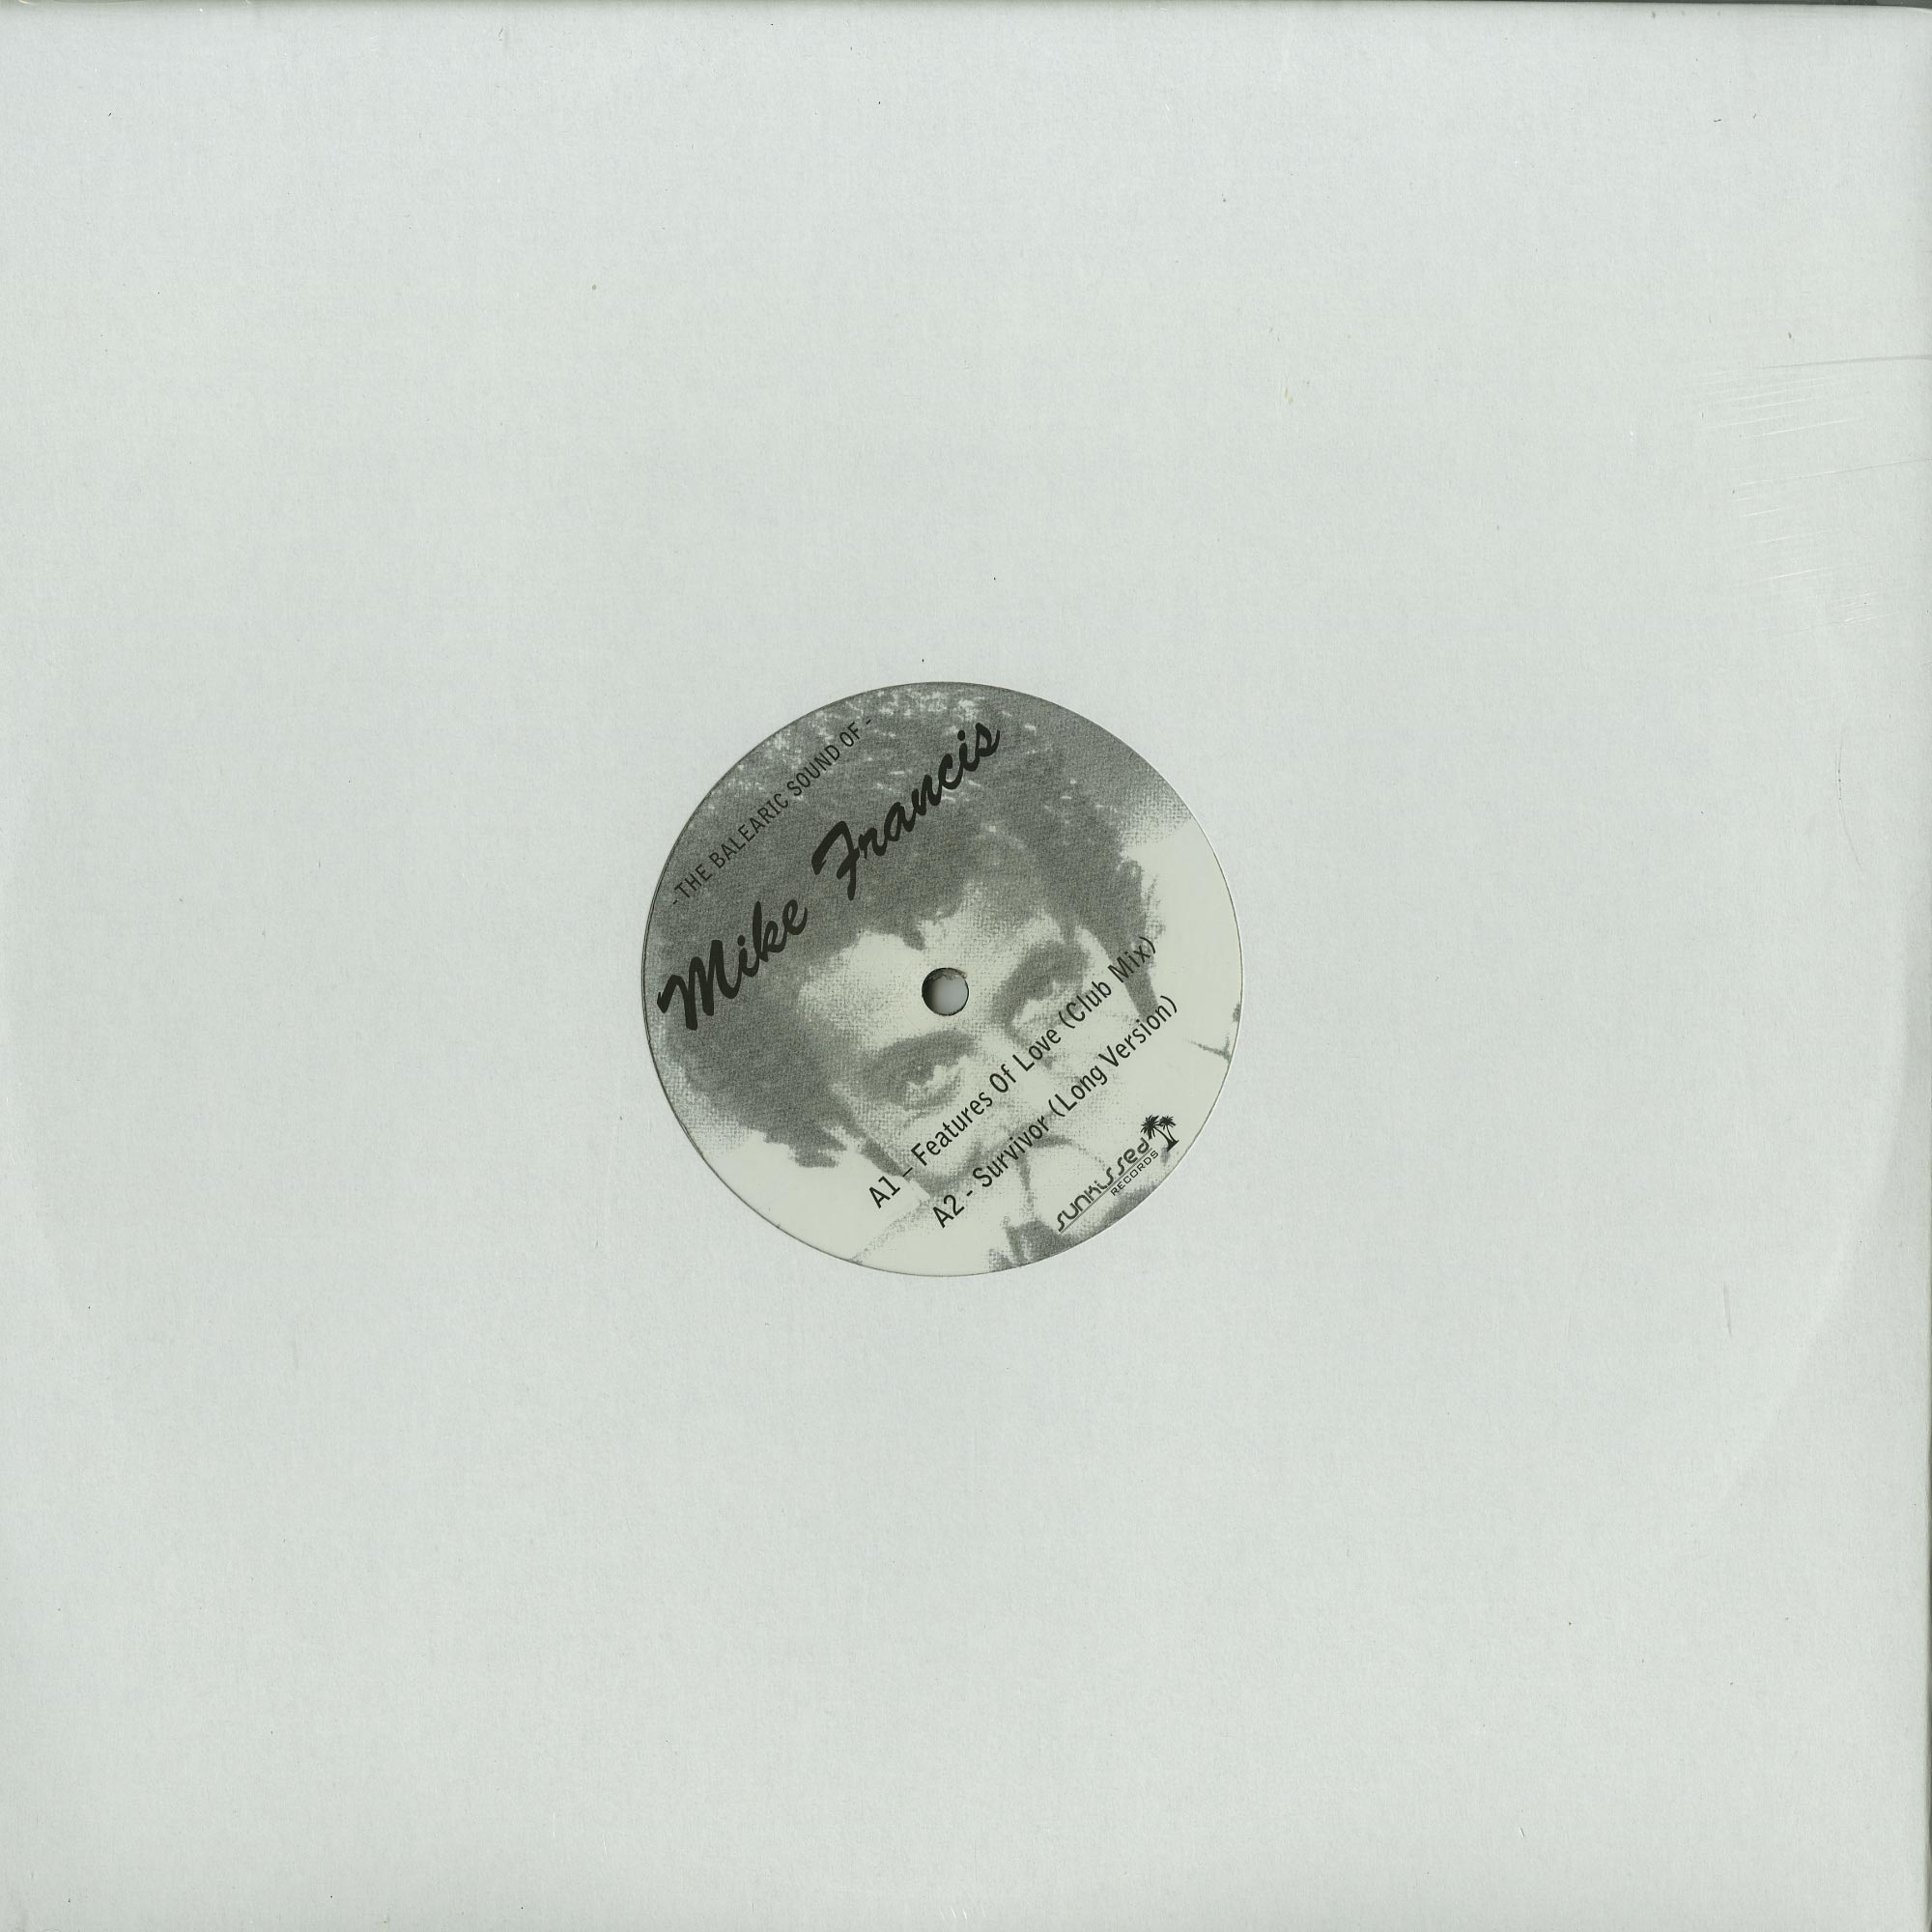 Mike Francis - THE BALEARIC SOUND OF MIKE FRANCIS